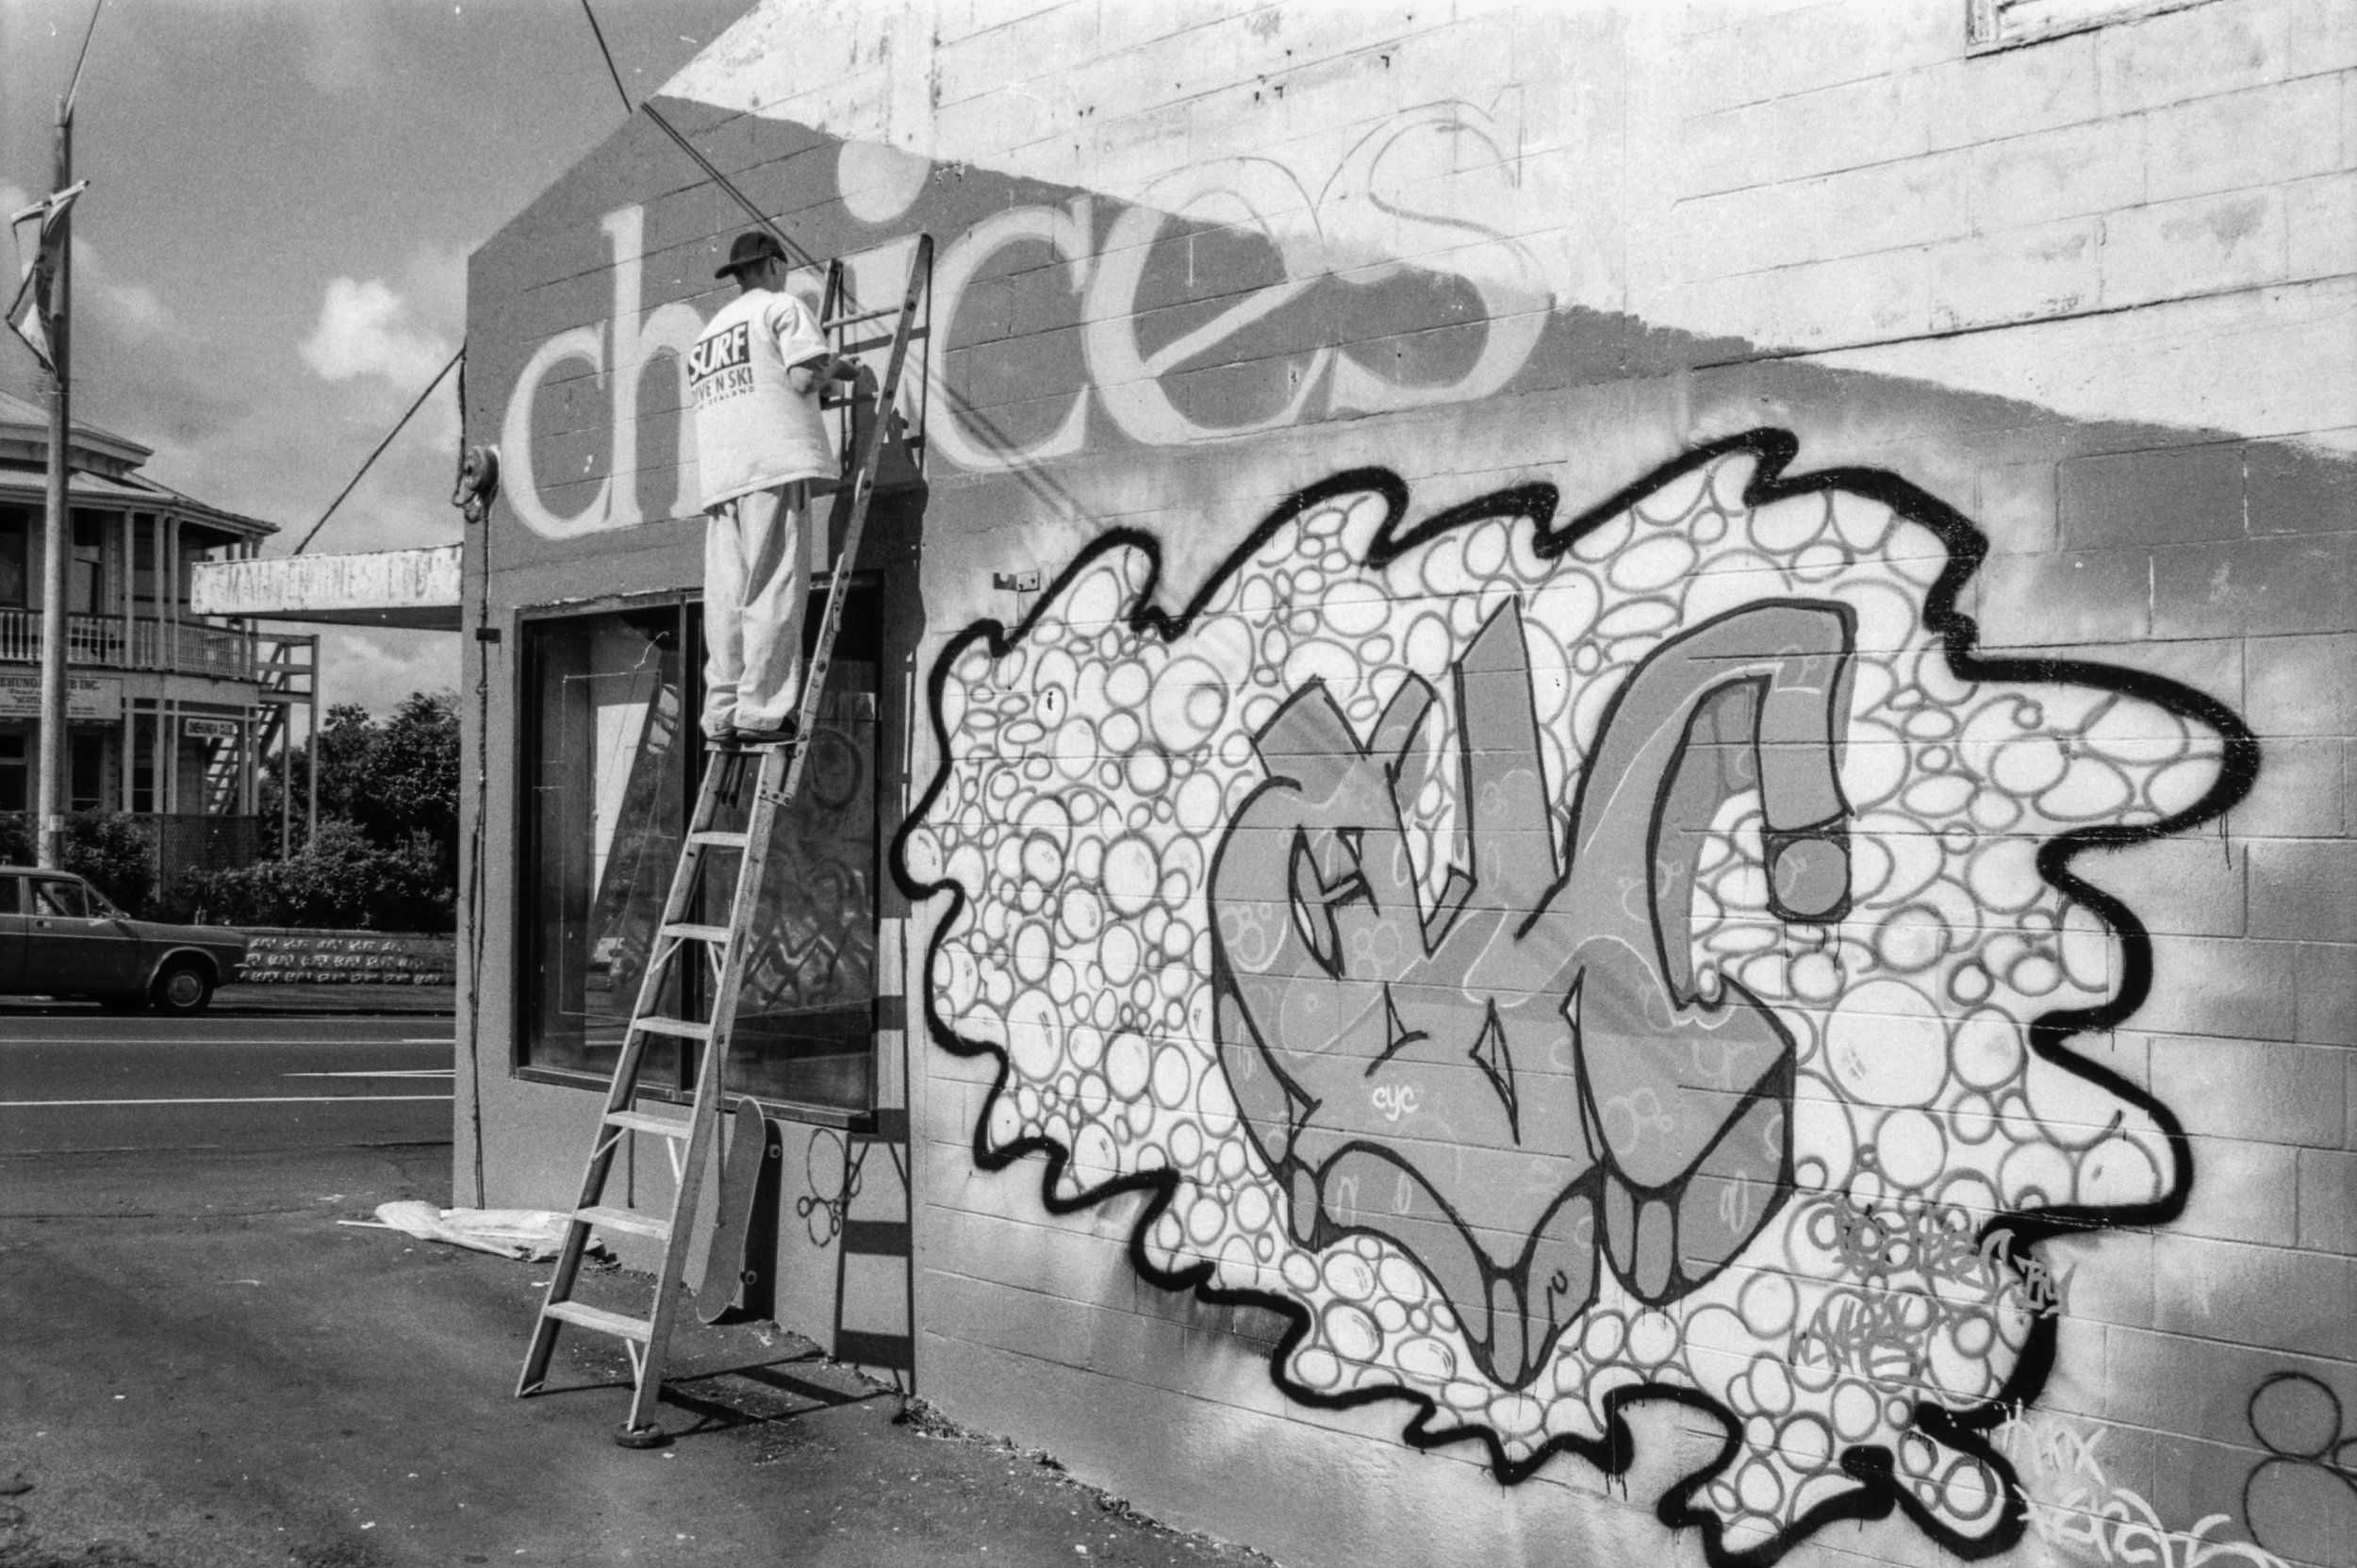 Onehunga Sign Writing Choices Youth Centre Onehunga Mall. Photo credit: Stjohn Milgrew. 1995.